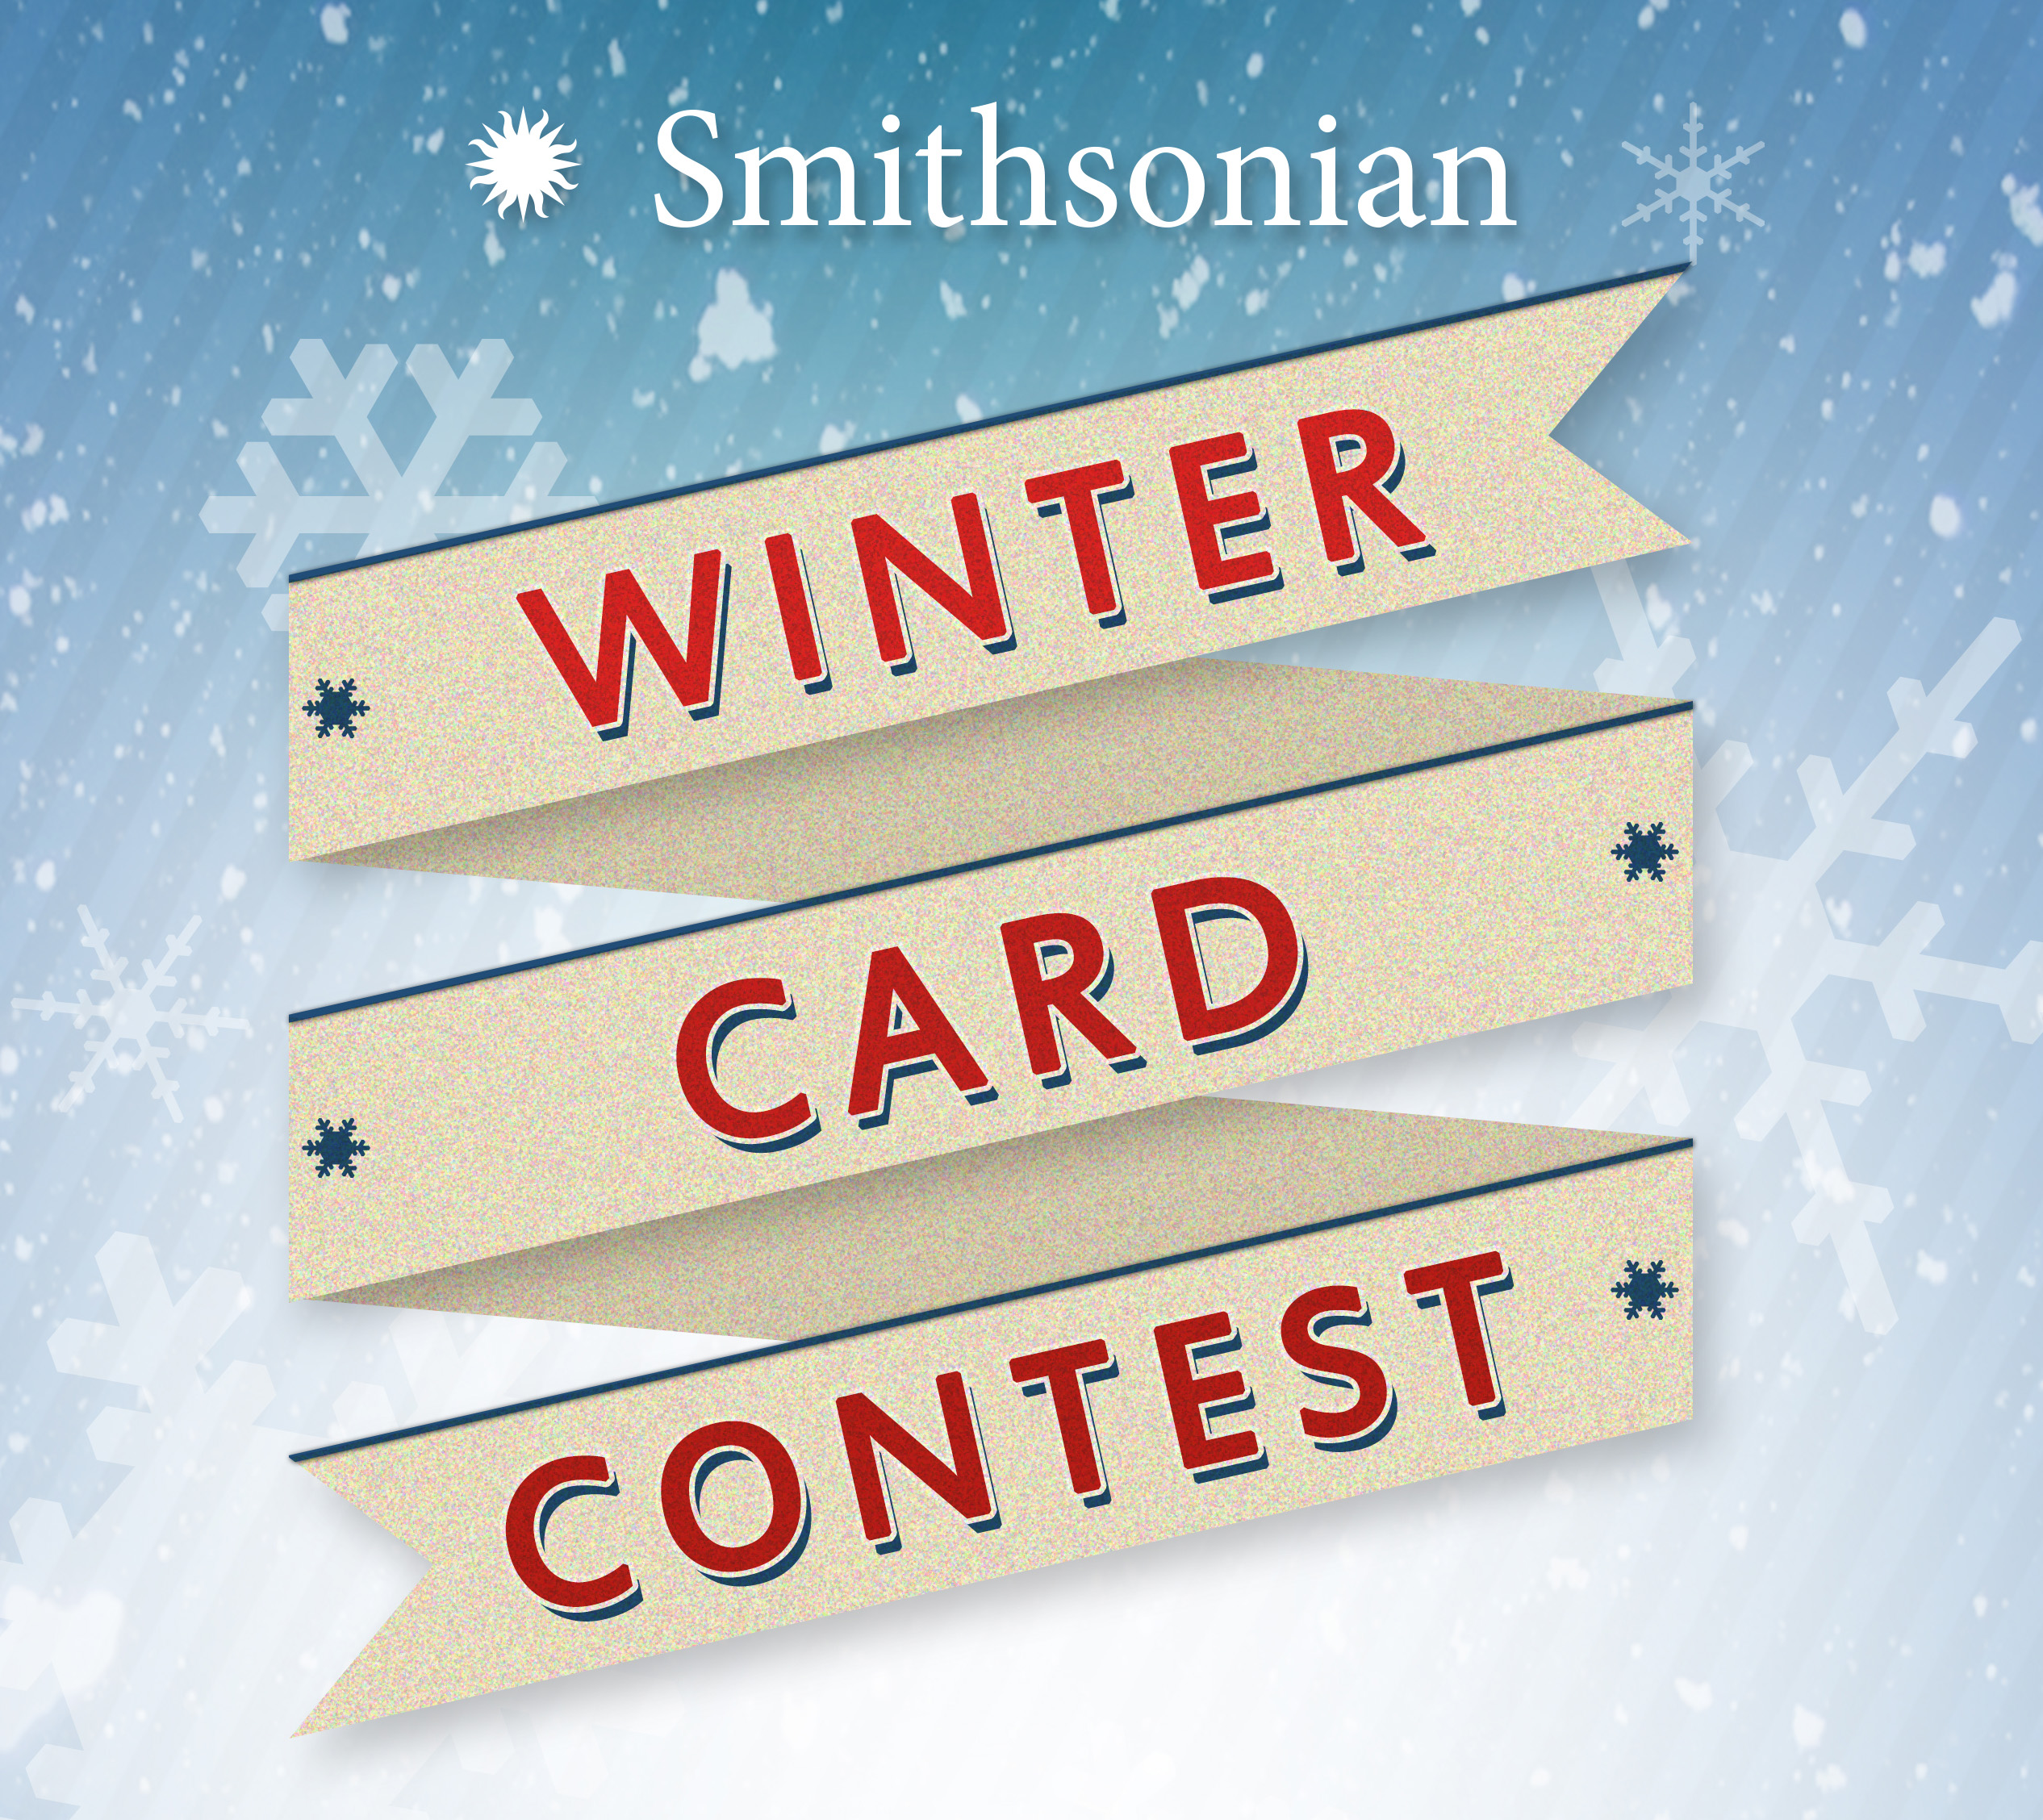 Winter Card Contest poster